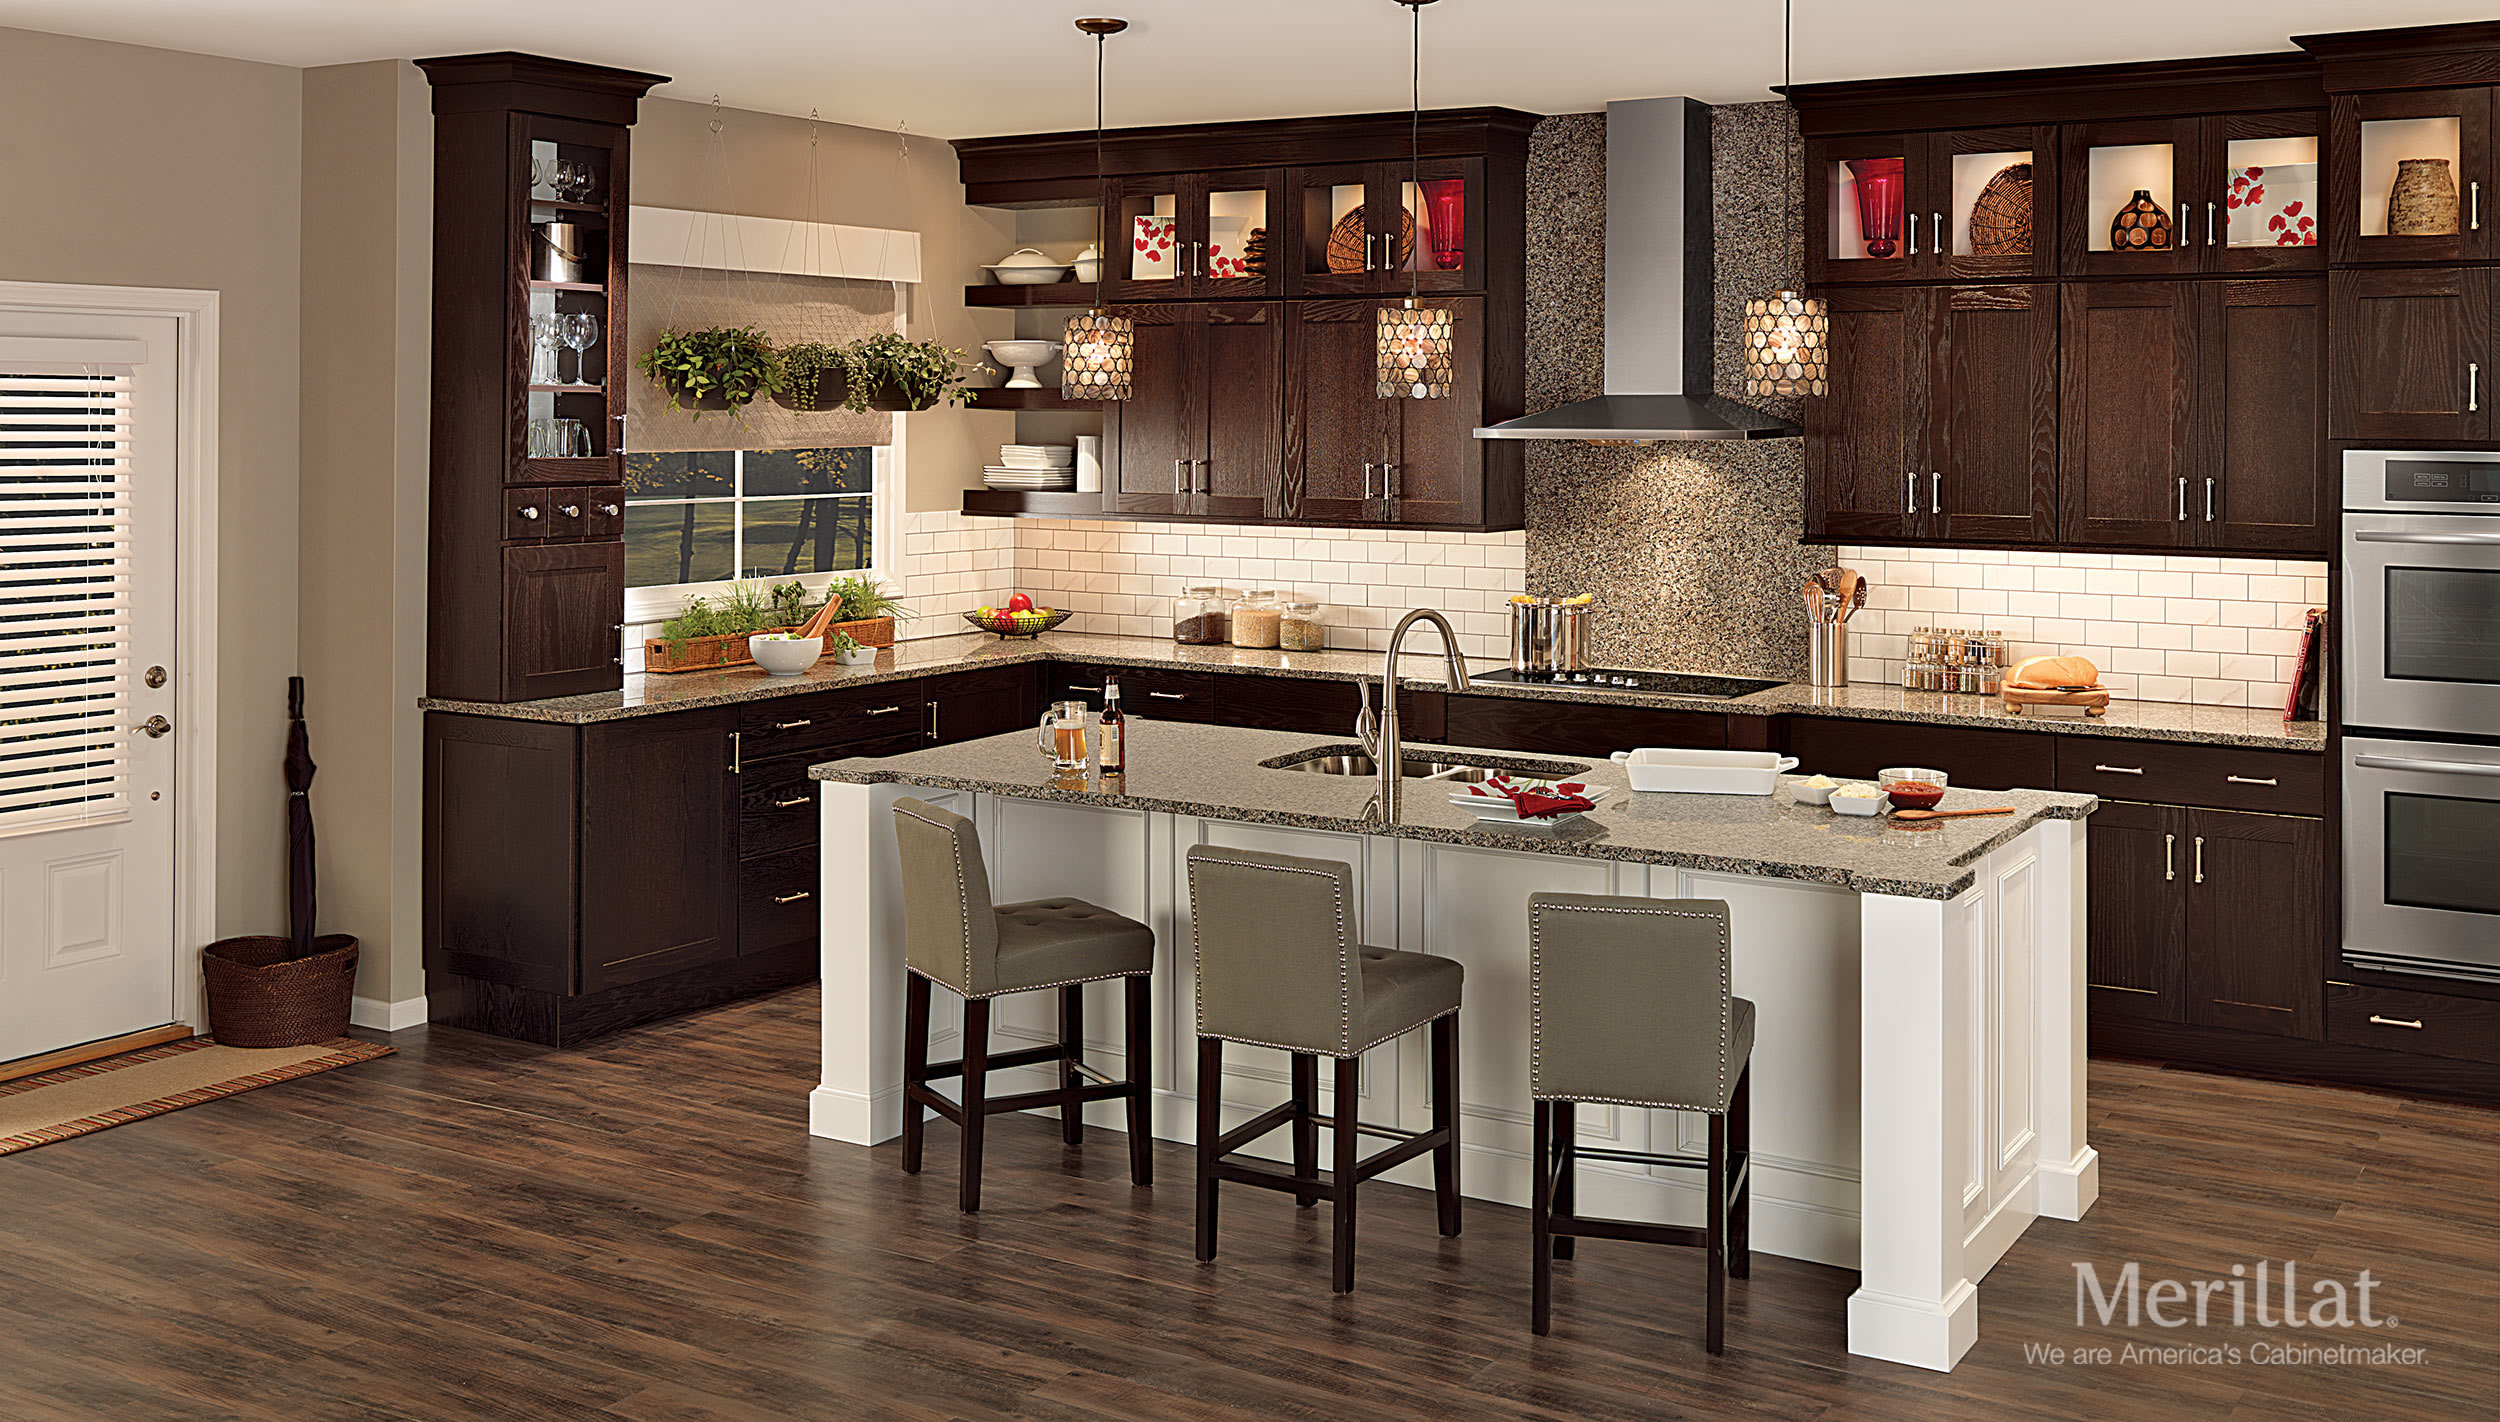 merillat classic tolani in oak kona and merillat classic cannonsburg in maple cotton - Merillat Classic Kitchen Cabinets